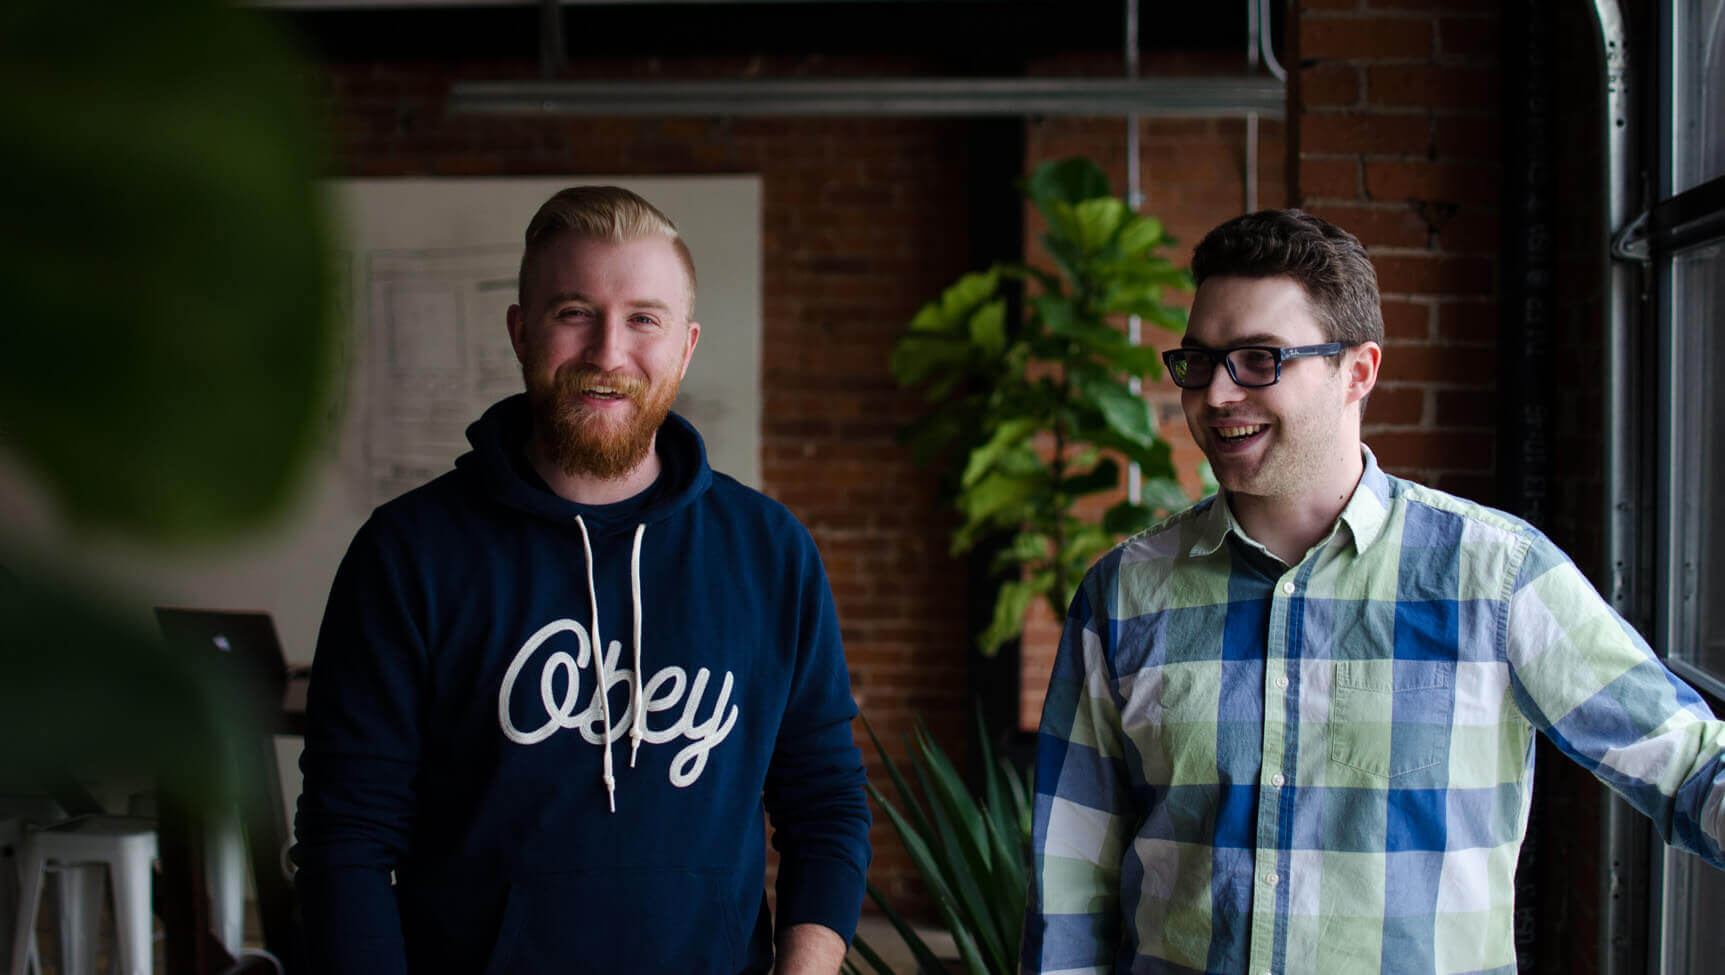 Josh Webster and Martin Ostrem, Echidna Minneapolis eCommerce Agency